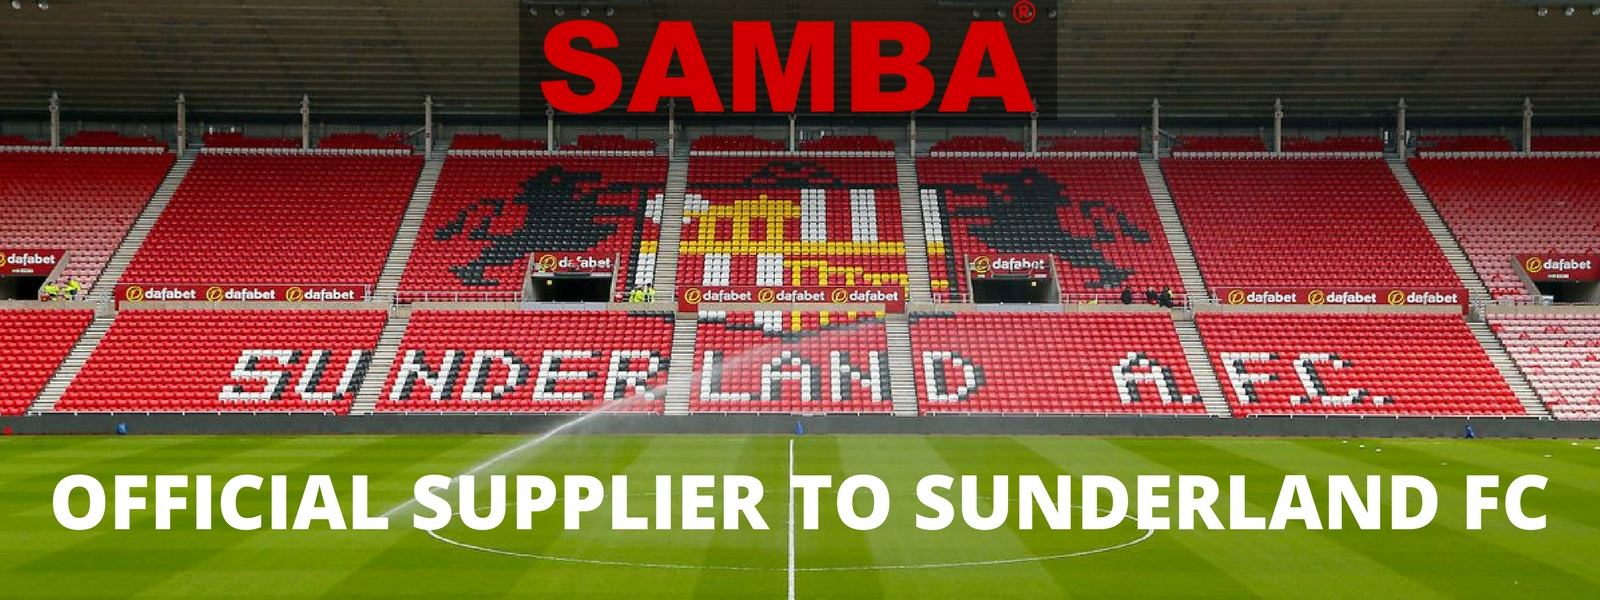 Samba Official Suppier to Sunderland FC